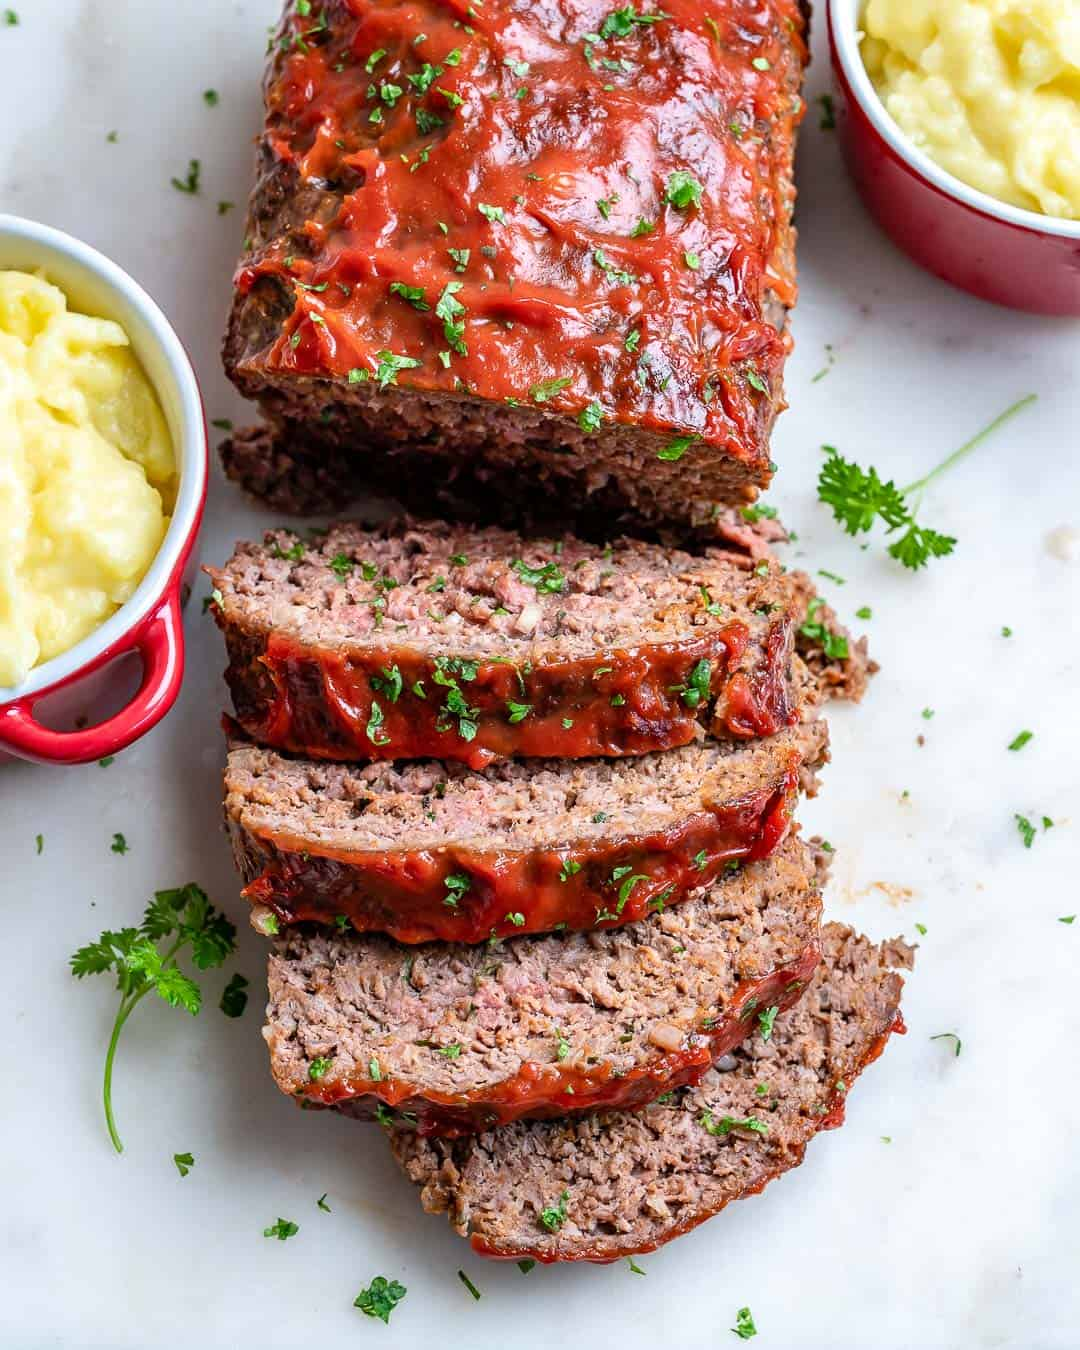 Easy Homemade Meatloaf Recipe Healthy Fitness Meals